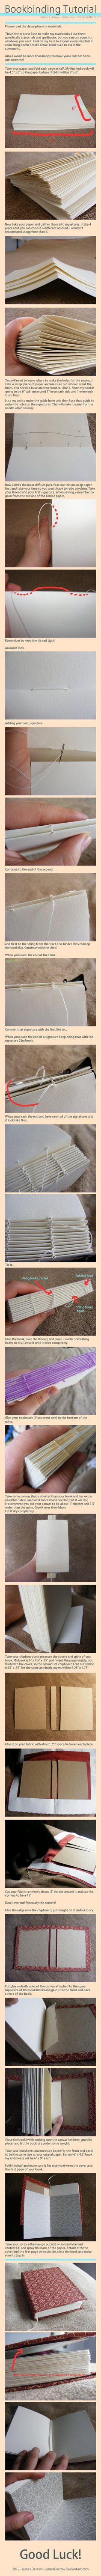 make'em books - via Imgur  a quick visual guide and steps to creating your own beautiful hand bound books!!